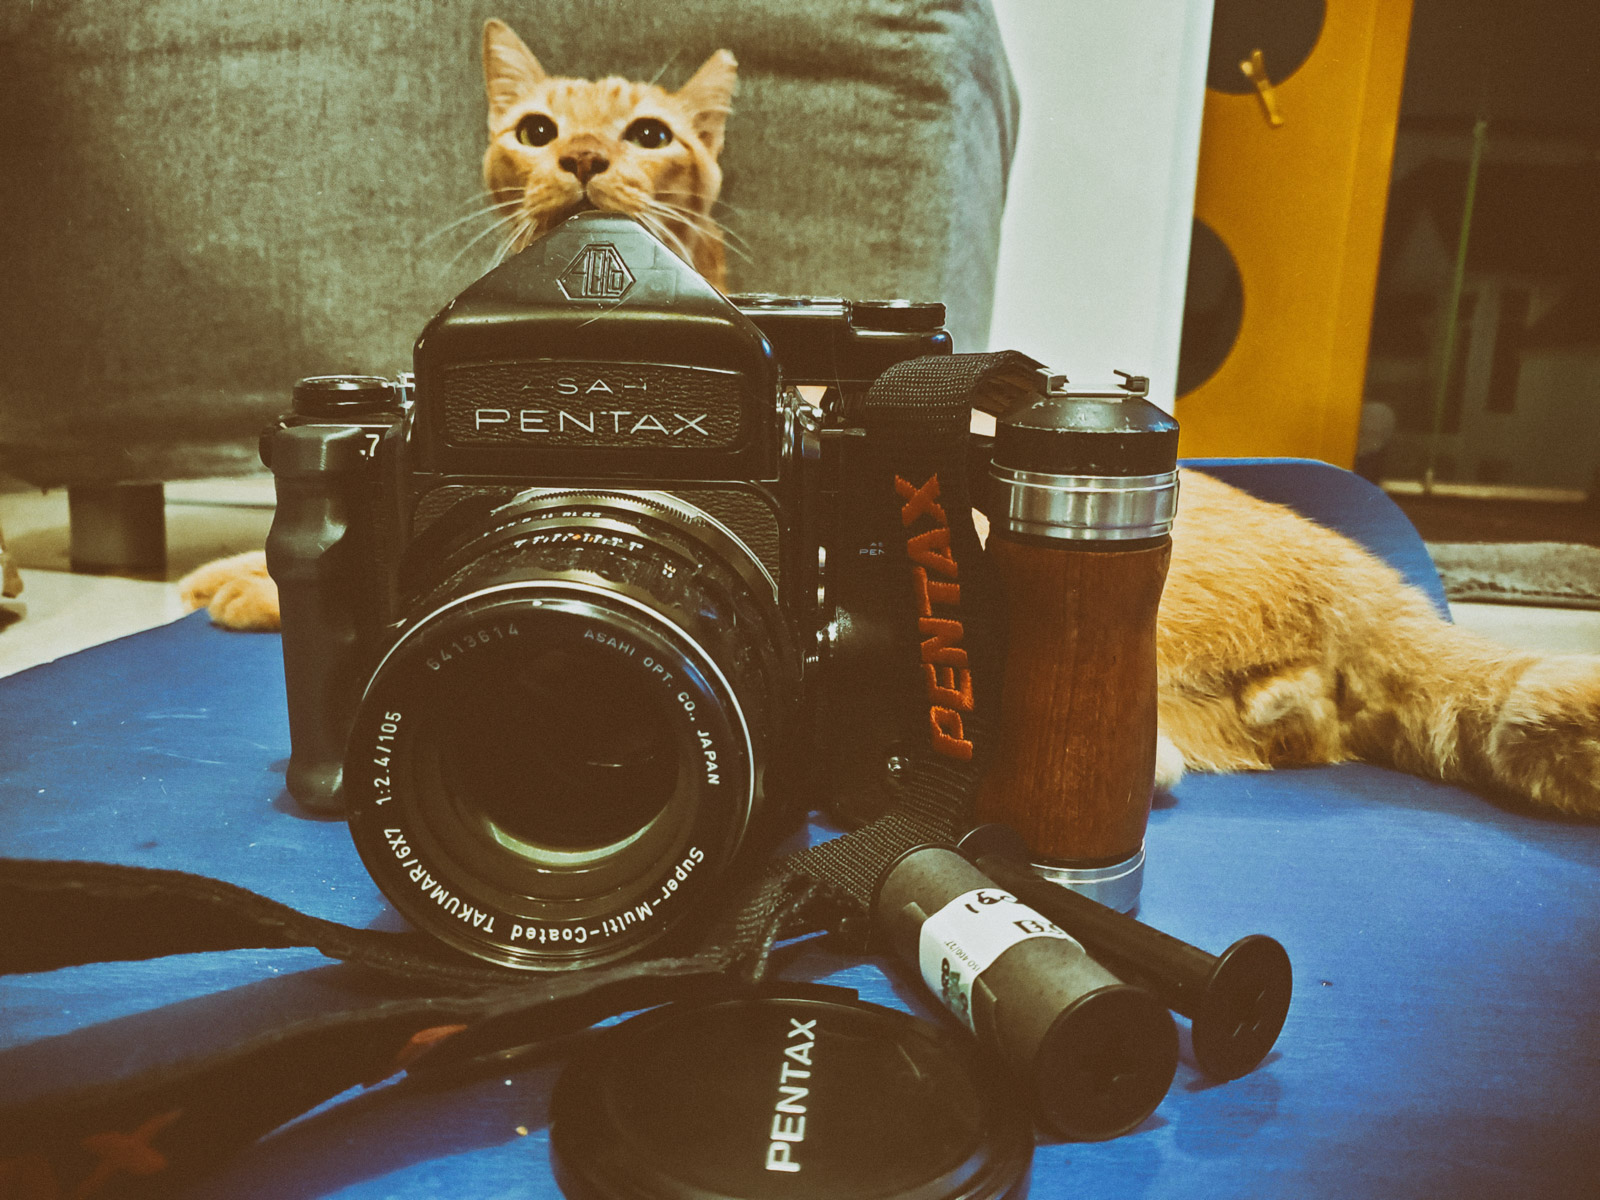 Harry the cat and Luther-the Pentax 6x7